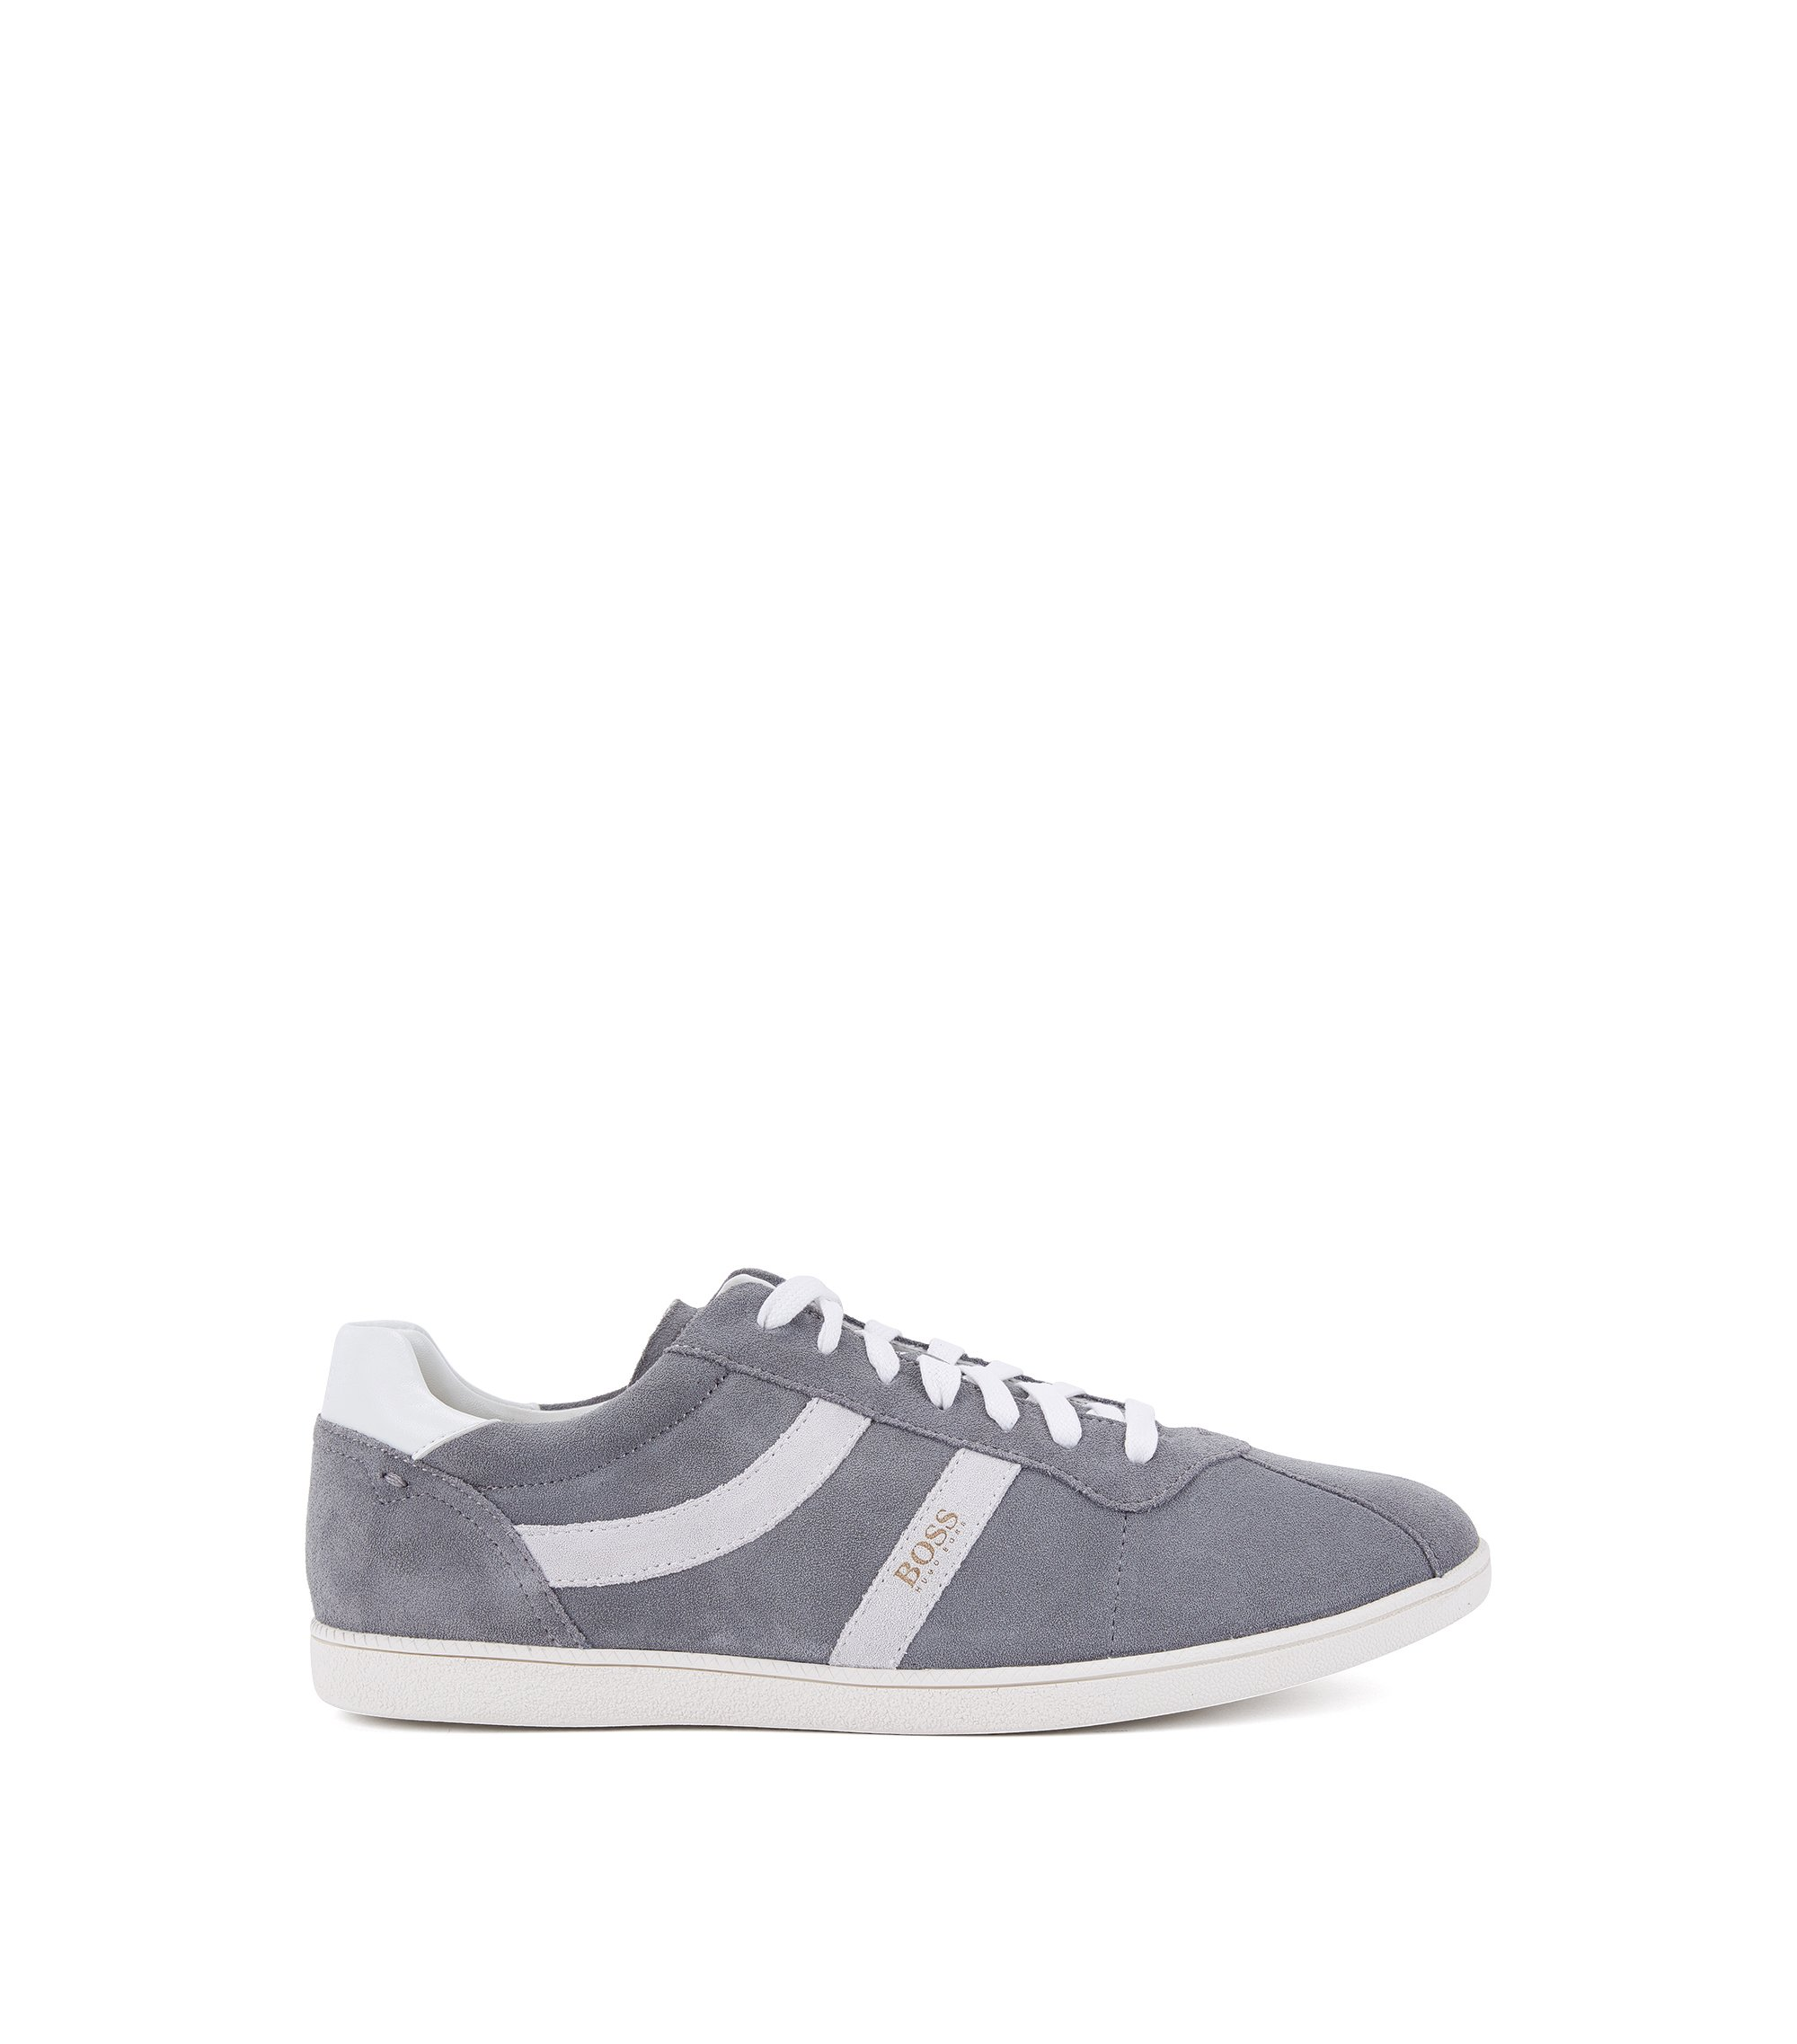 Low-top suede trainers with side stripes, Grey